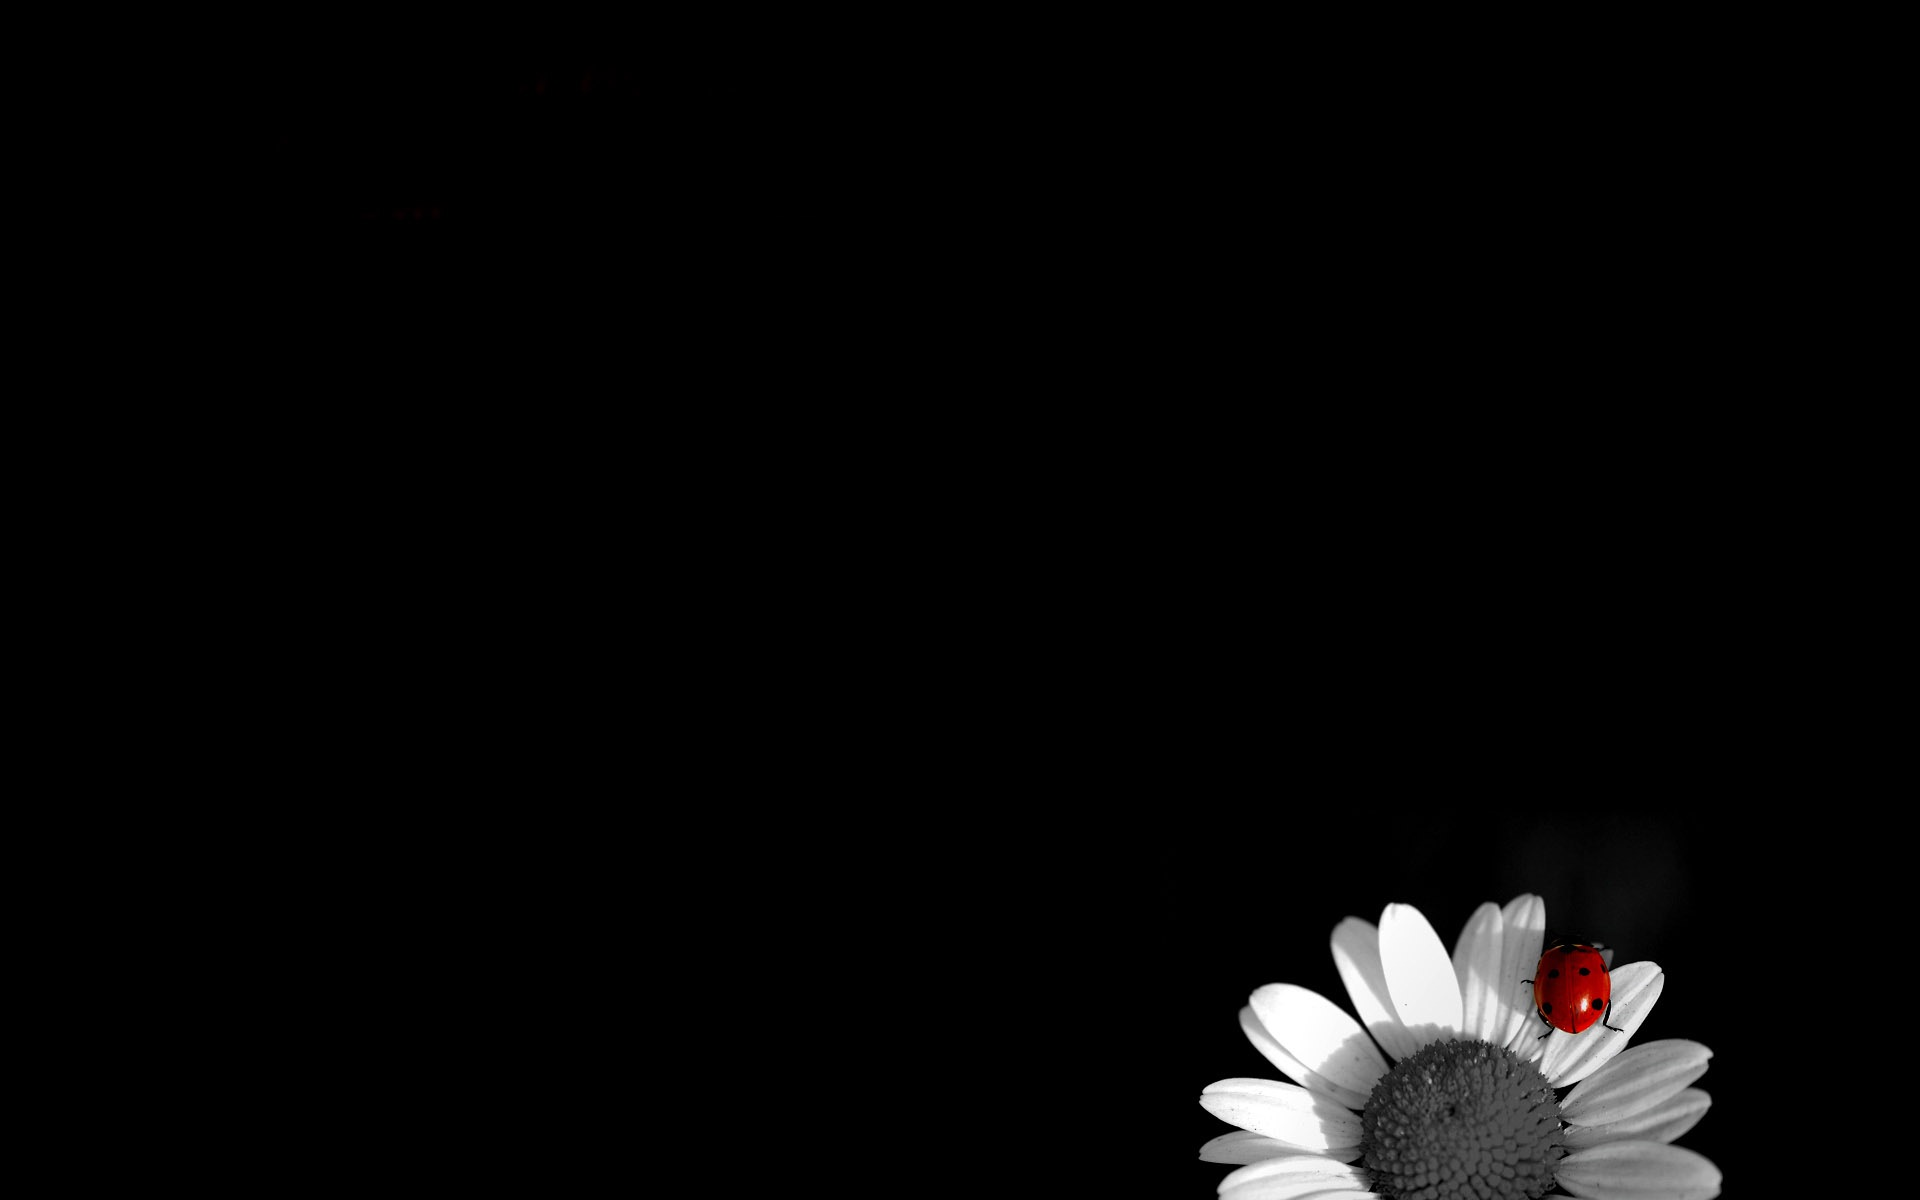 Black and White Wallpapers High Quality | Download Free